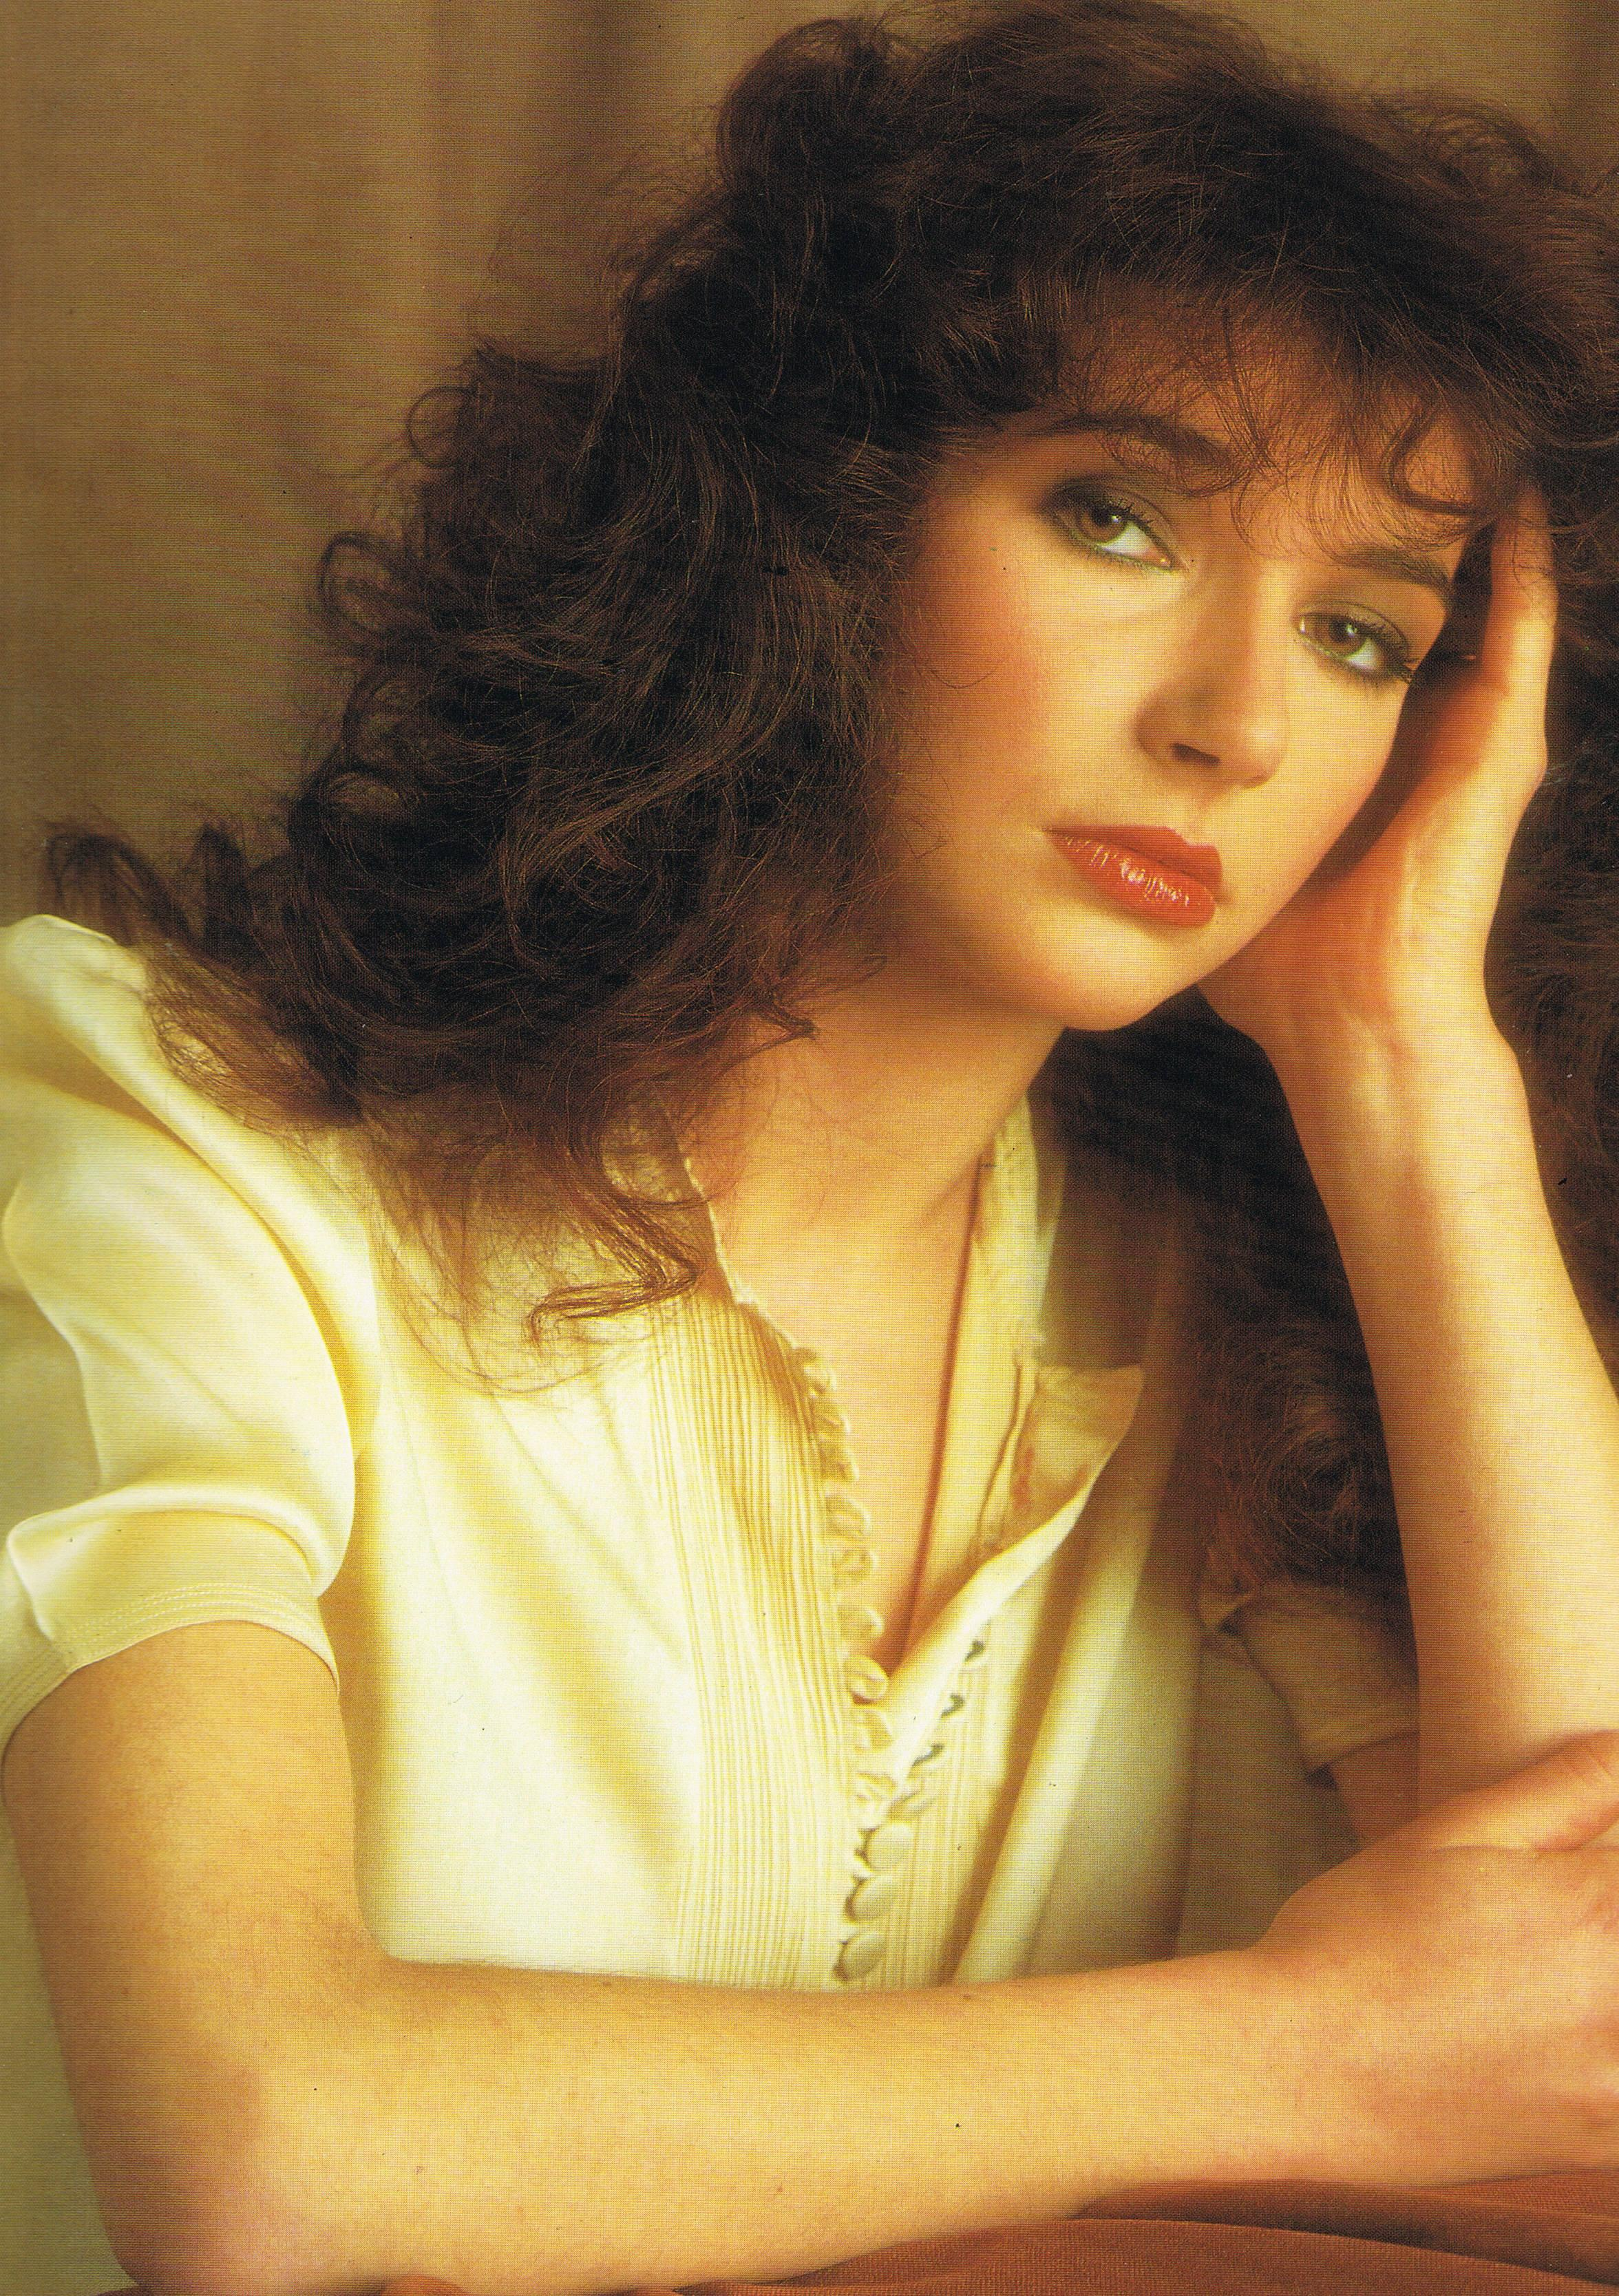 celebrity photo kate bush kate bush photo 379587 4 vote